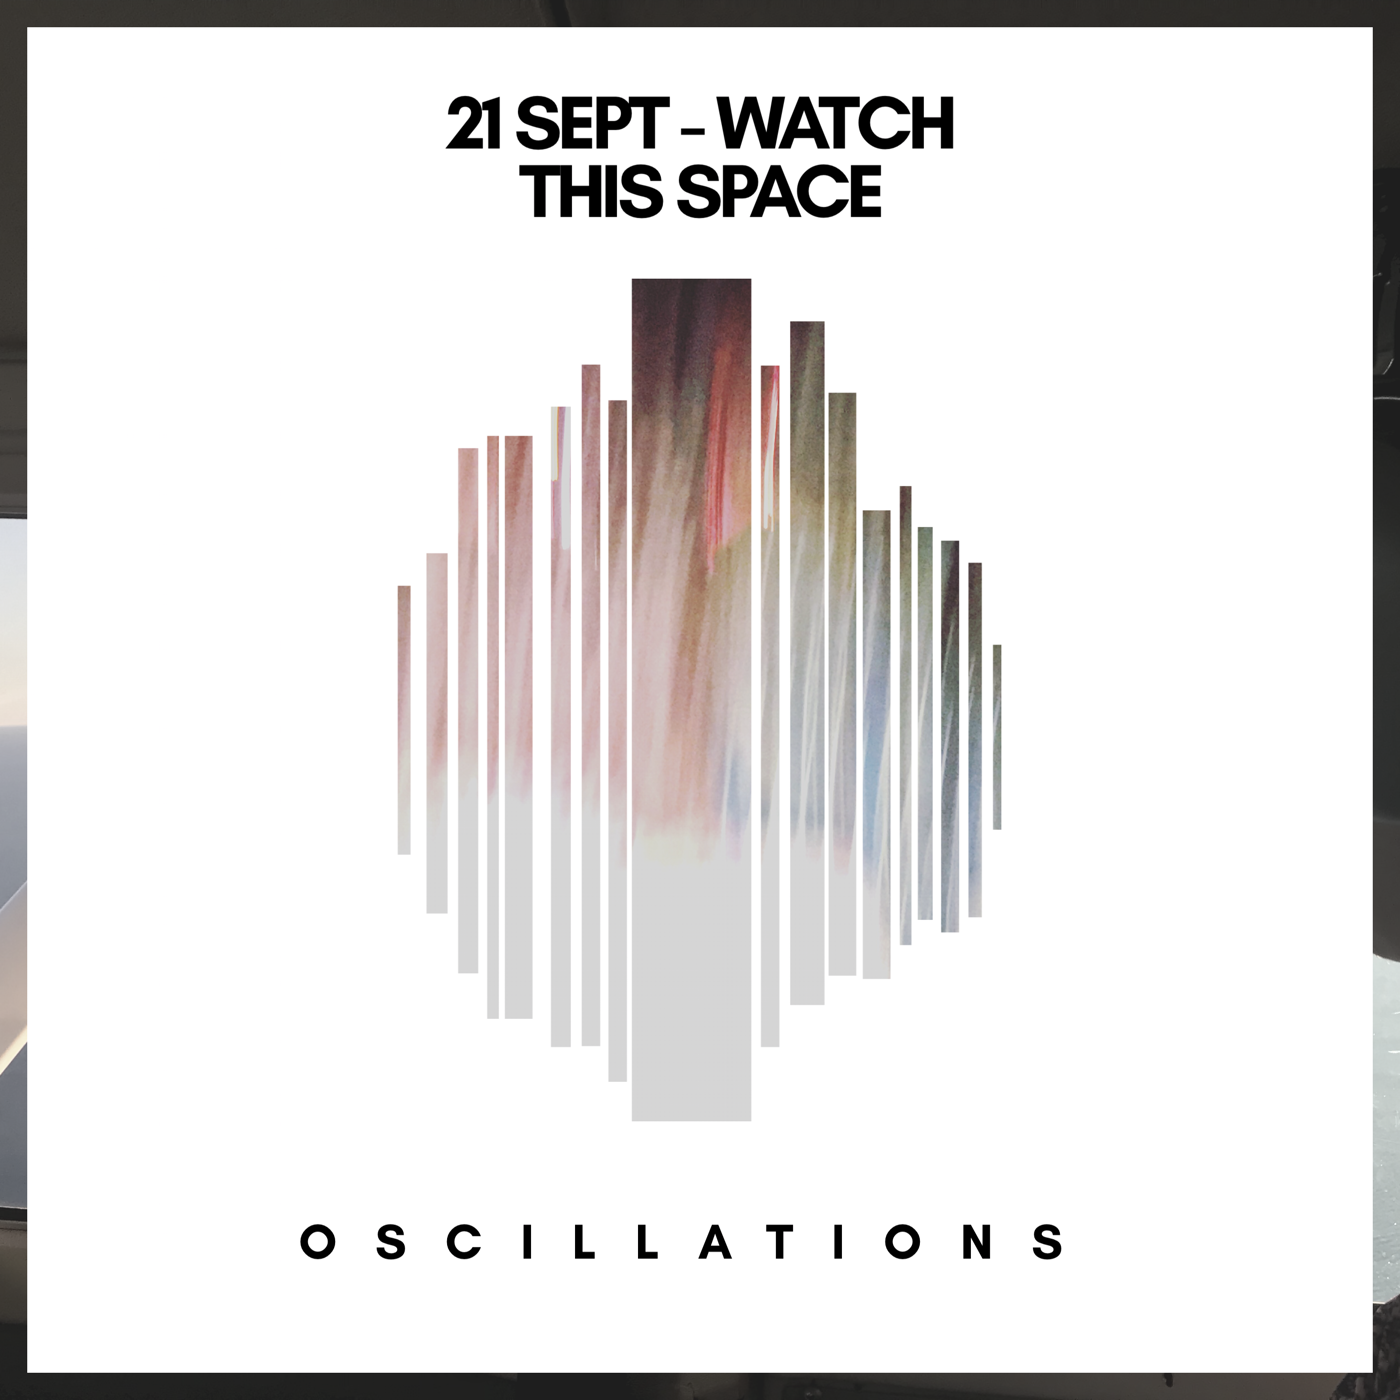 Oscillations image.png